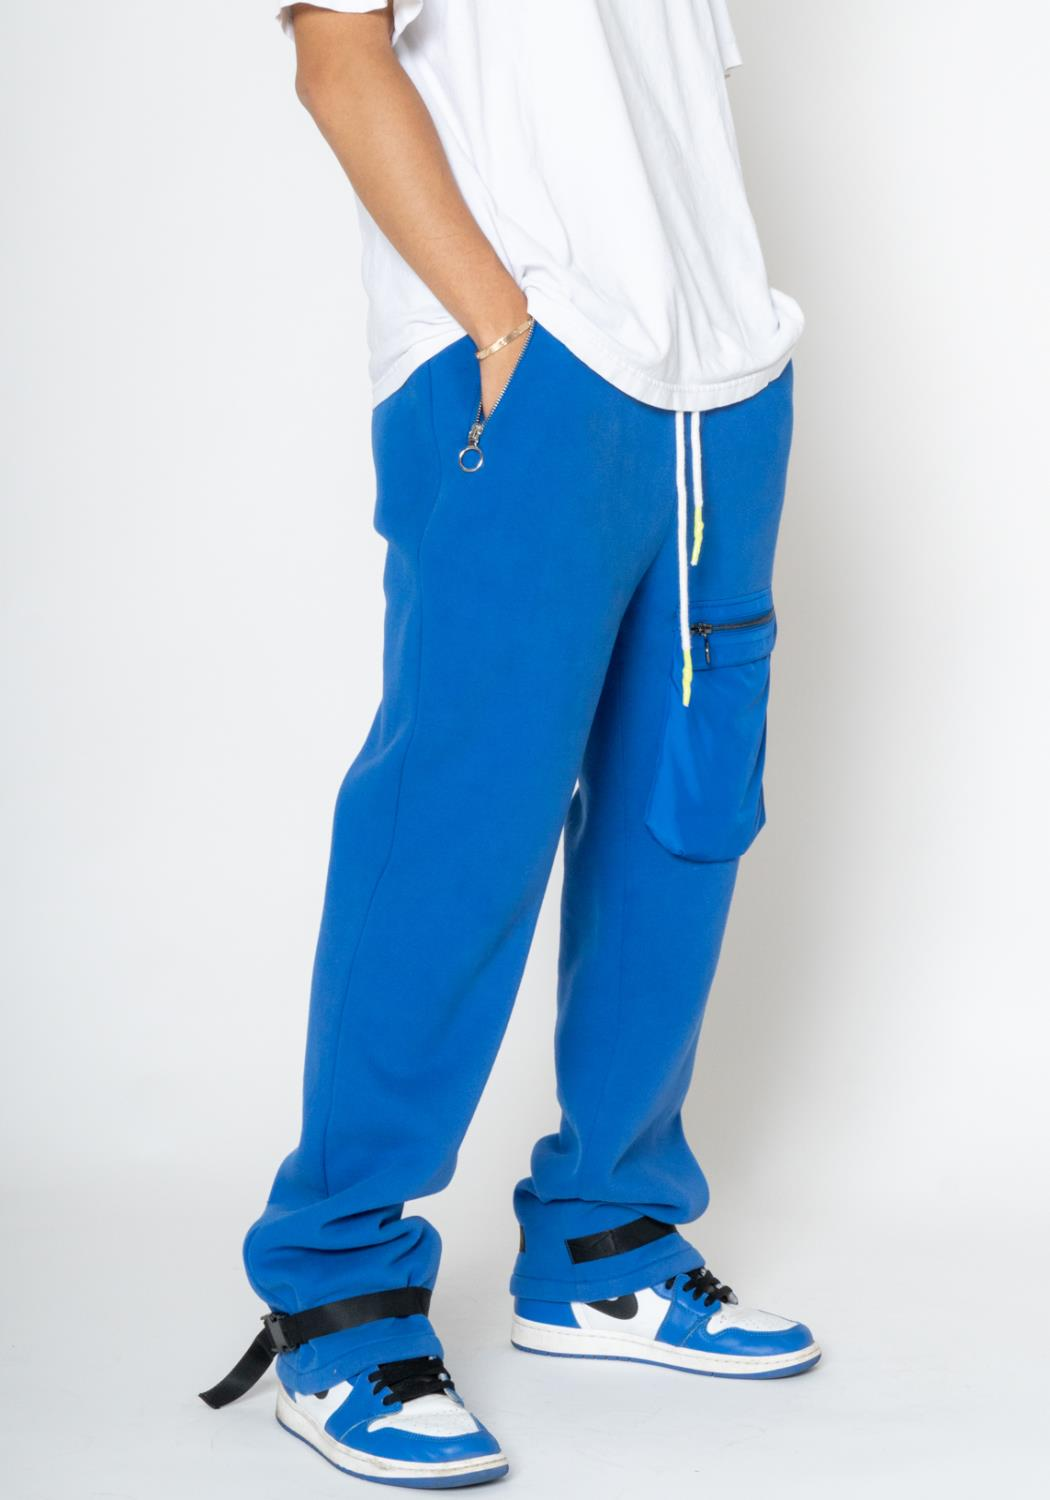 Konus Sweatpants with Nylon Cargo Pocket